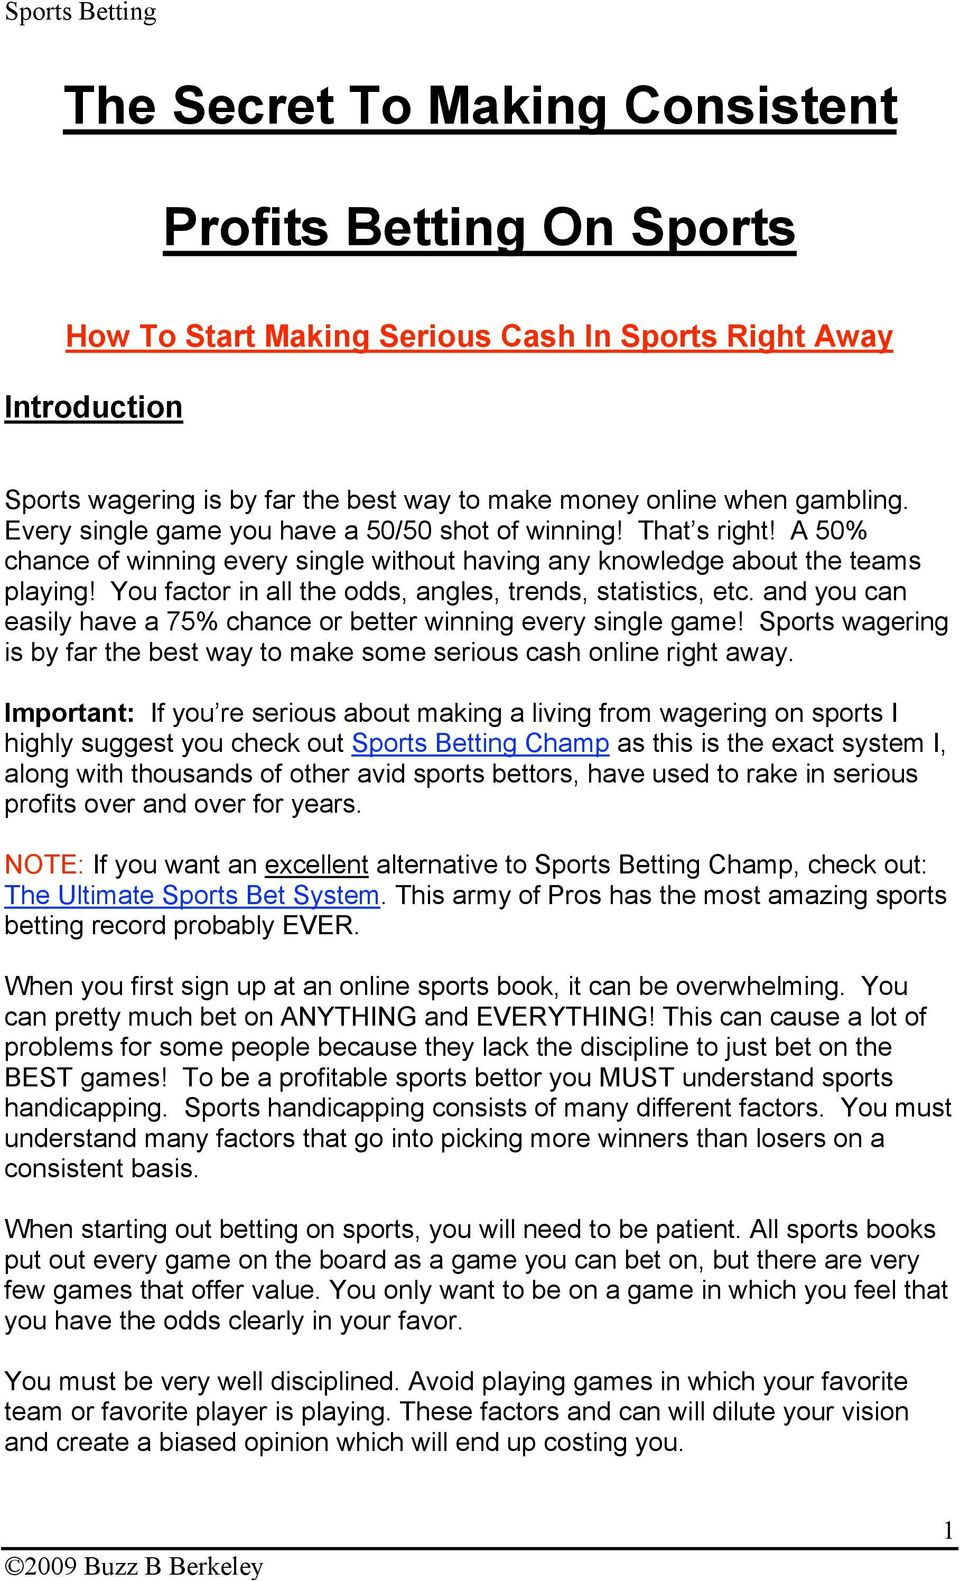 sports betting champ nhl system pdf